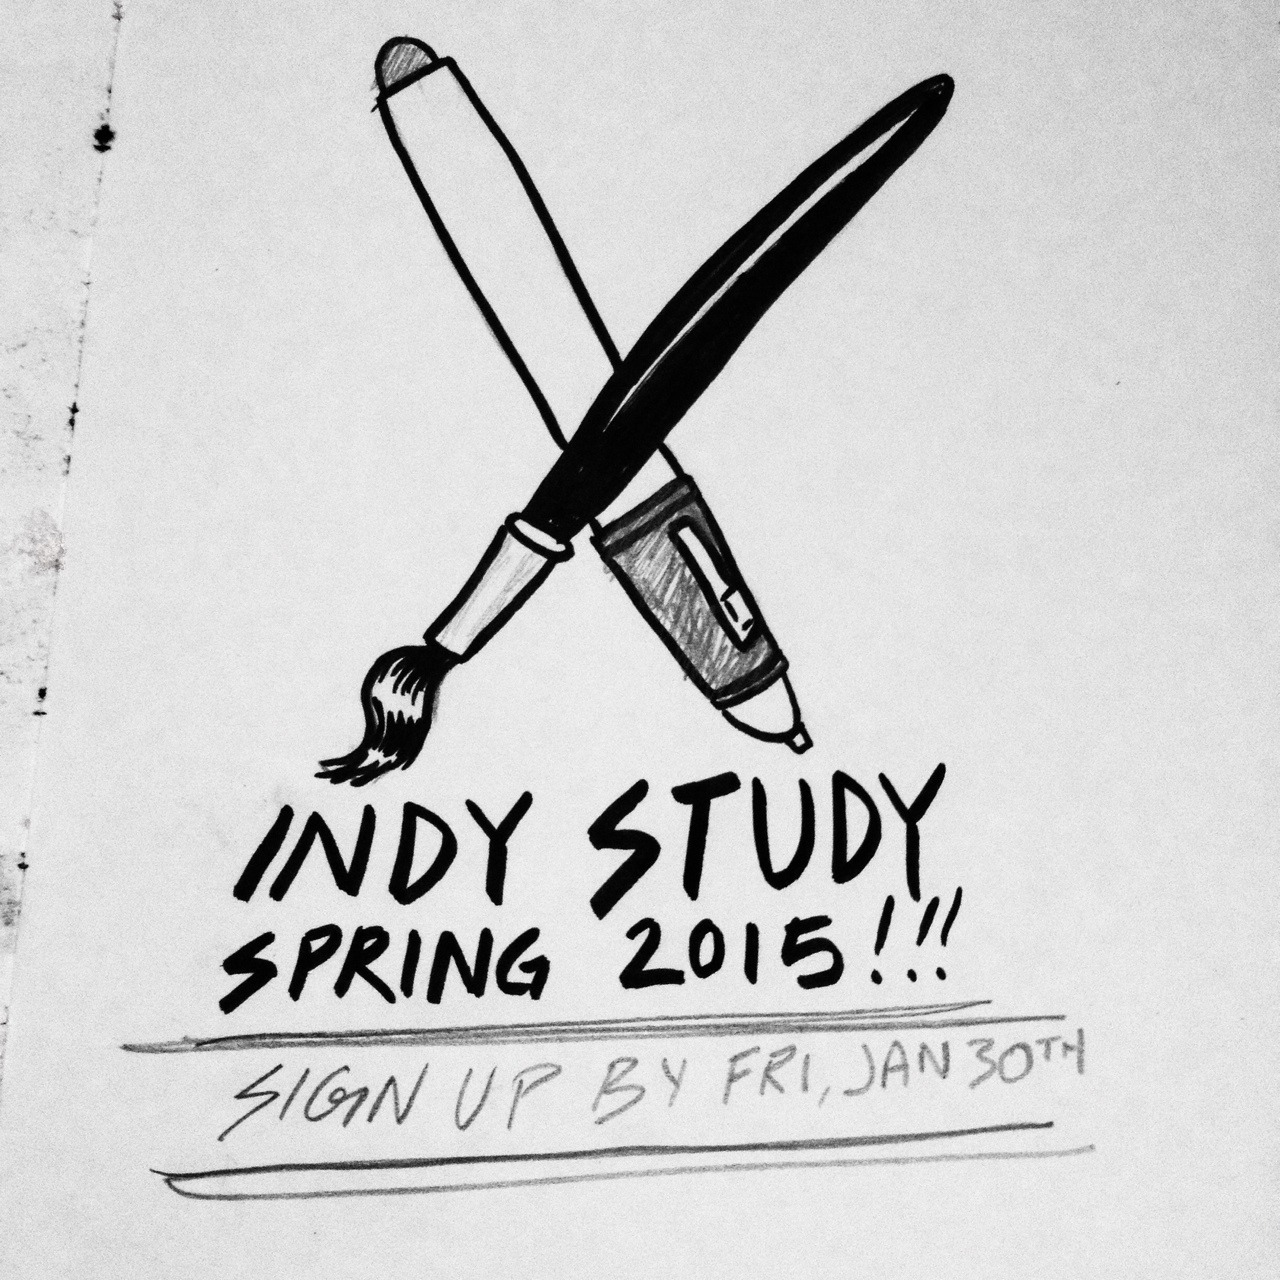 Considering taking a continuing education class in illustration, but you have a hectic schedule? Do you not want to get off your day job, pick up whatever you need for class and then drive/take public transit to a class room where you might not get 100% of the teacher's attention?   Consider taking one of my Indy Study Classes in Illustration this Spring in one of three subjects!      Editorial Illustration Portfolio - Learn the fundamentals of what makes a strong editorial piece and begin to build a series of pieces toward a portfolio made for the editorial market. We'll go over marketing, the history of editorial illustration and so much more.    Visual Story Telling - Have you considered writing a picture book or starting to write a full length graphic novel? In this class we talk about story structure and how to work on a series of images that work well together.    Lettering & Picture Making (NEW!) - Posters, Records, Book Covers, Magazine Covers… All of these at one point have been illustrated and hand lettered. Through a series of projects and exercises, you'll be well on your way to becoming an improved illustrator and hand letterer.      Head on over to my Indy Study page for more information  -  http://www.o-fishel.com/indy-study       Read what past students have said about the class and how they thought it helped them  -  http://www.o-fishel.com/testify      Space is limited to 6 students, Sign up by January 30th!